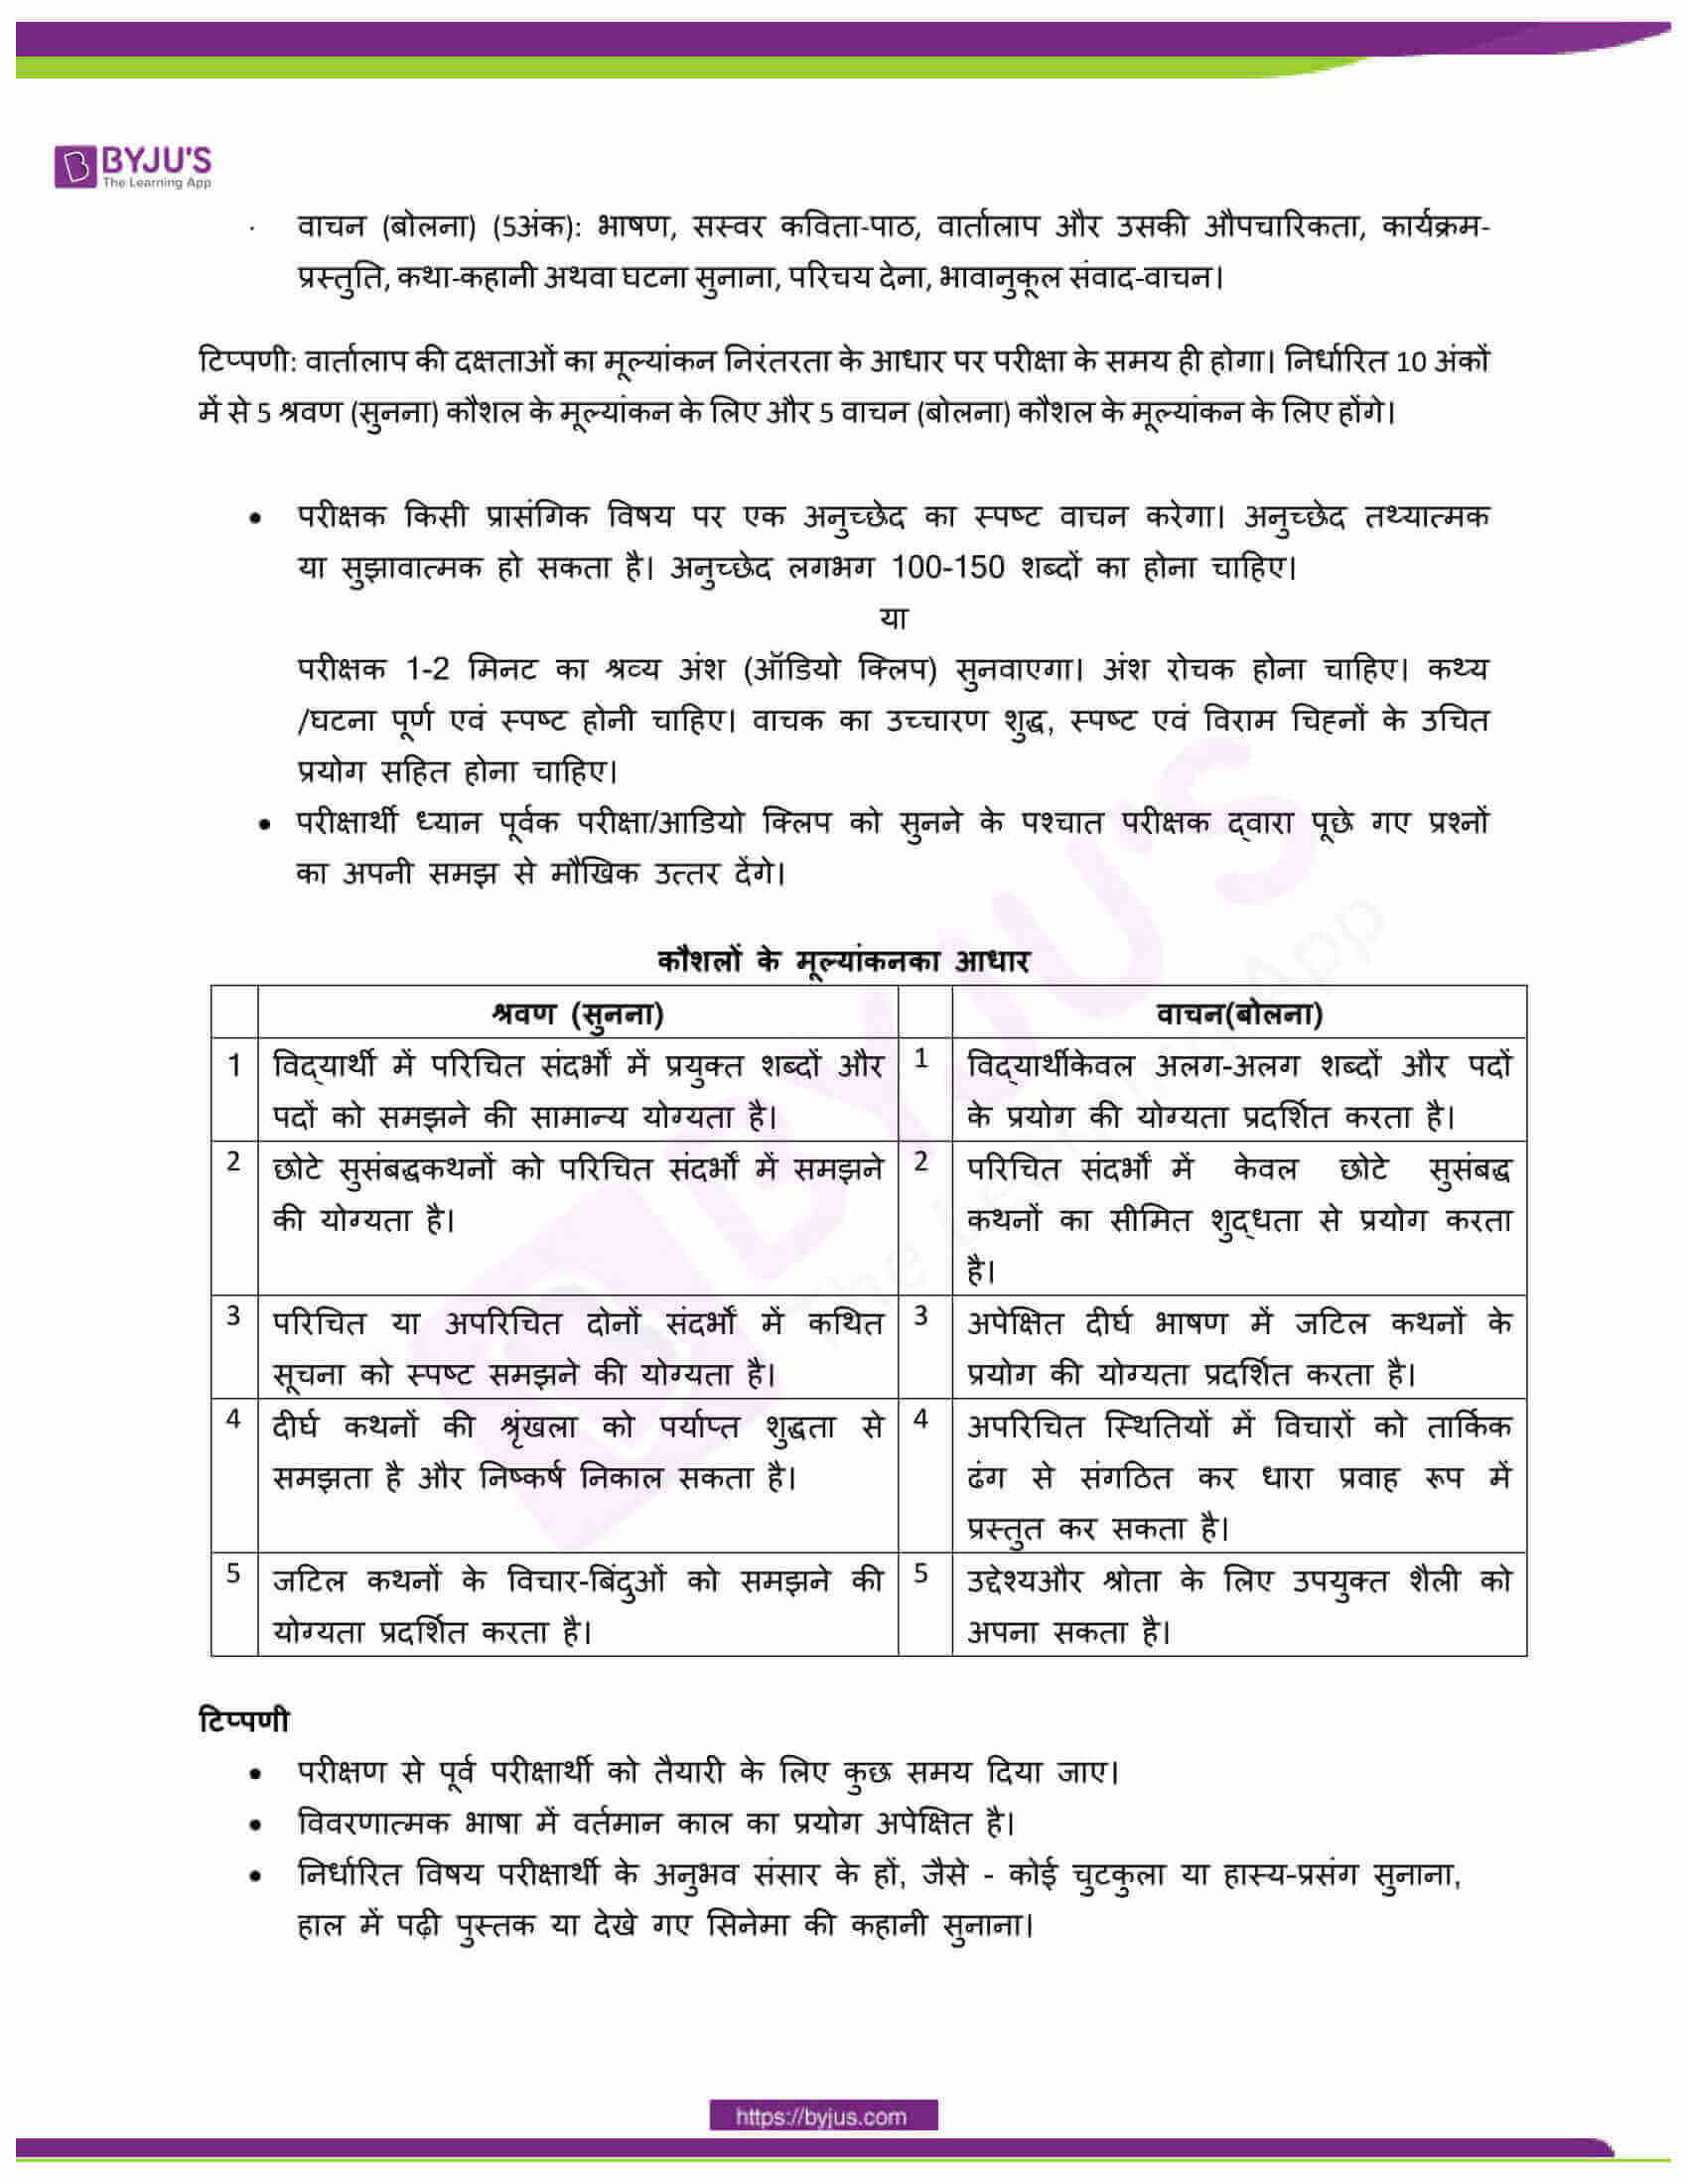 CBSE Class 10 Hindi Course A Revised Syllabus 2020 21 04